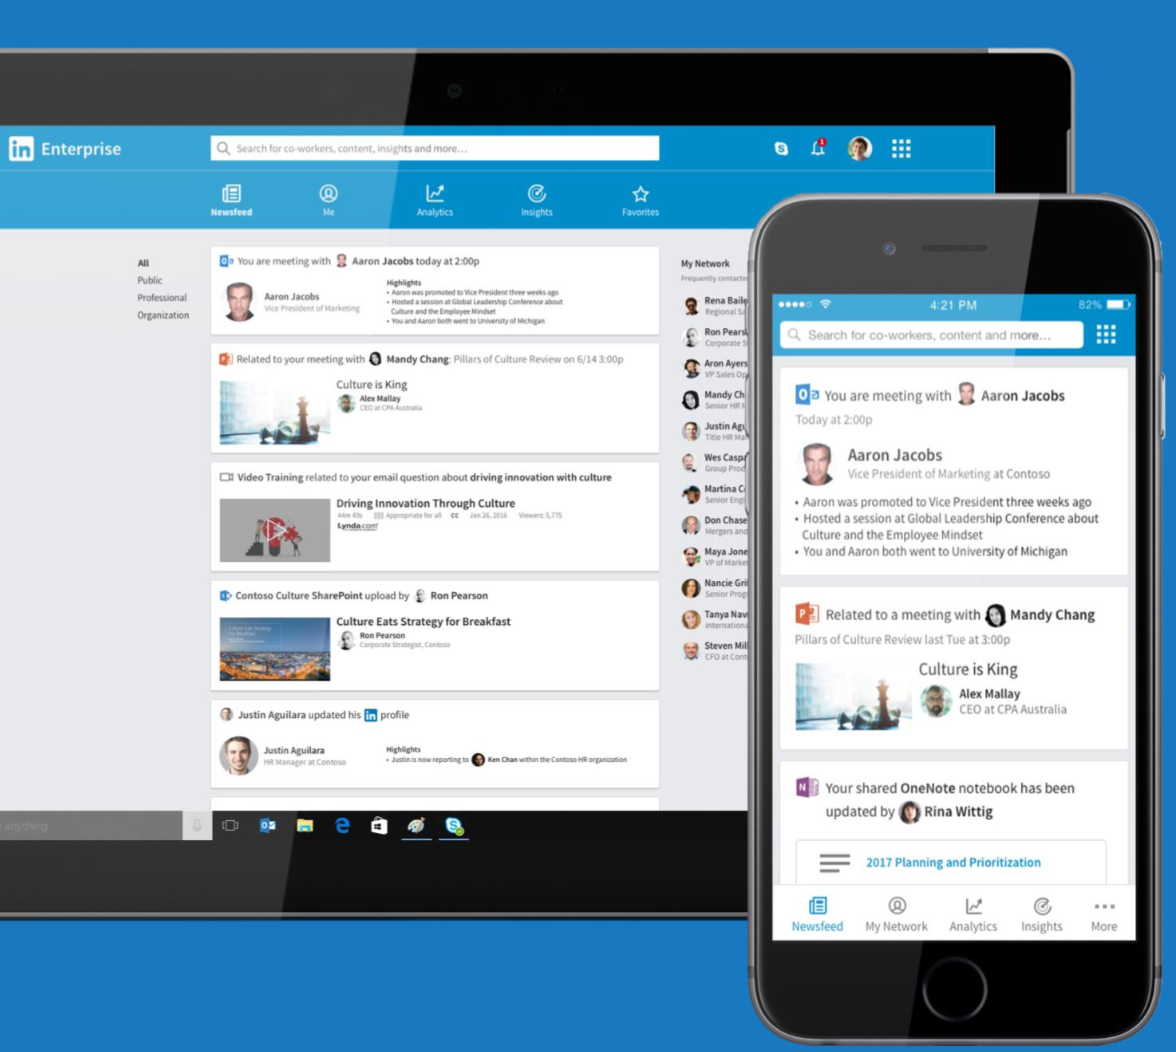 Microsoft bought LinkedIn for your relationship data | CIO